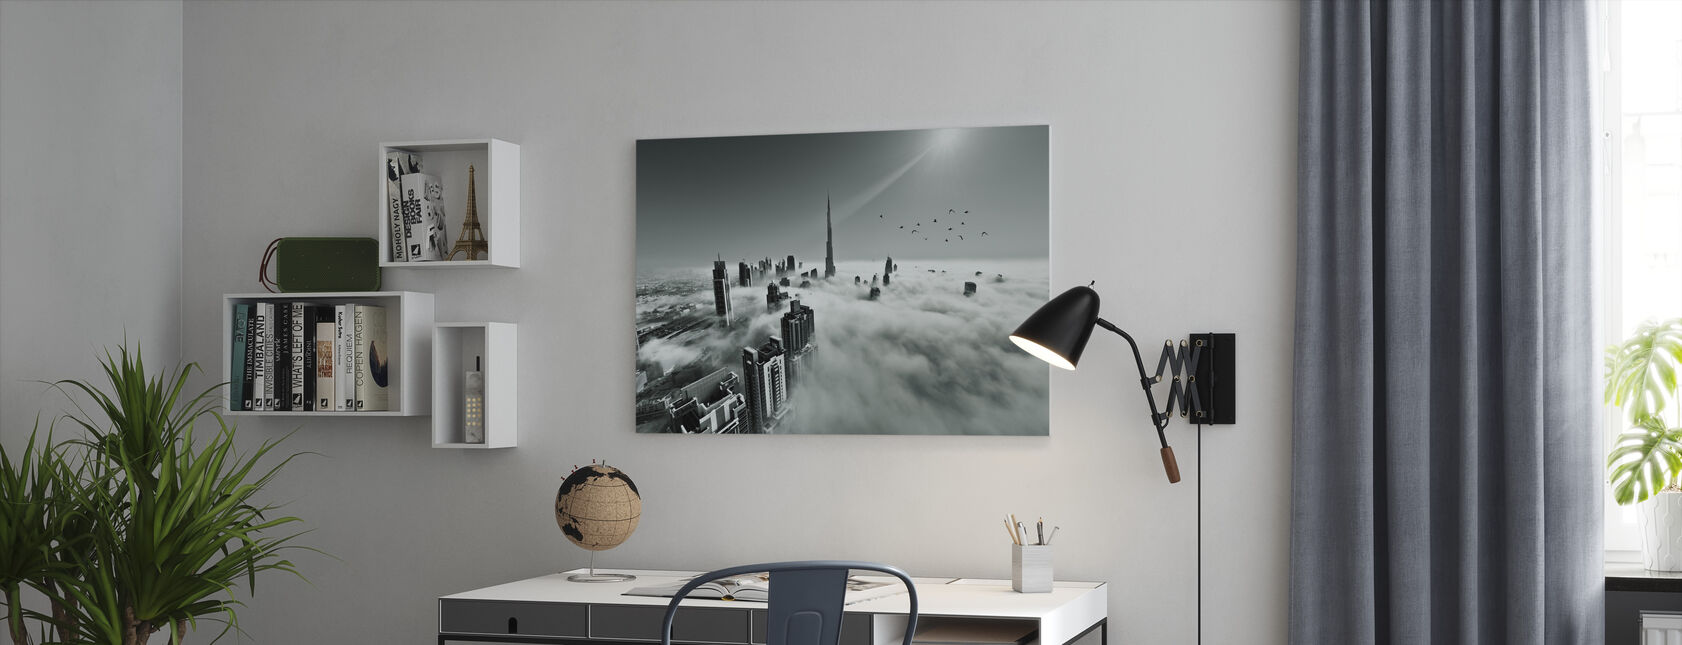 Up up and Above - Canvas print - Office